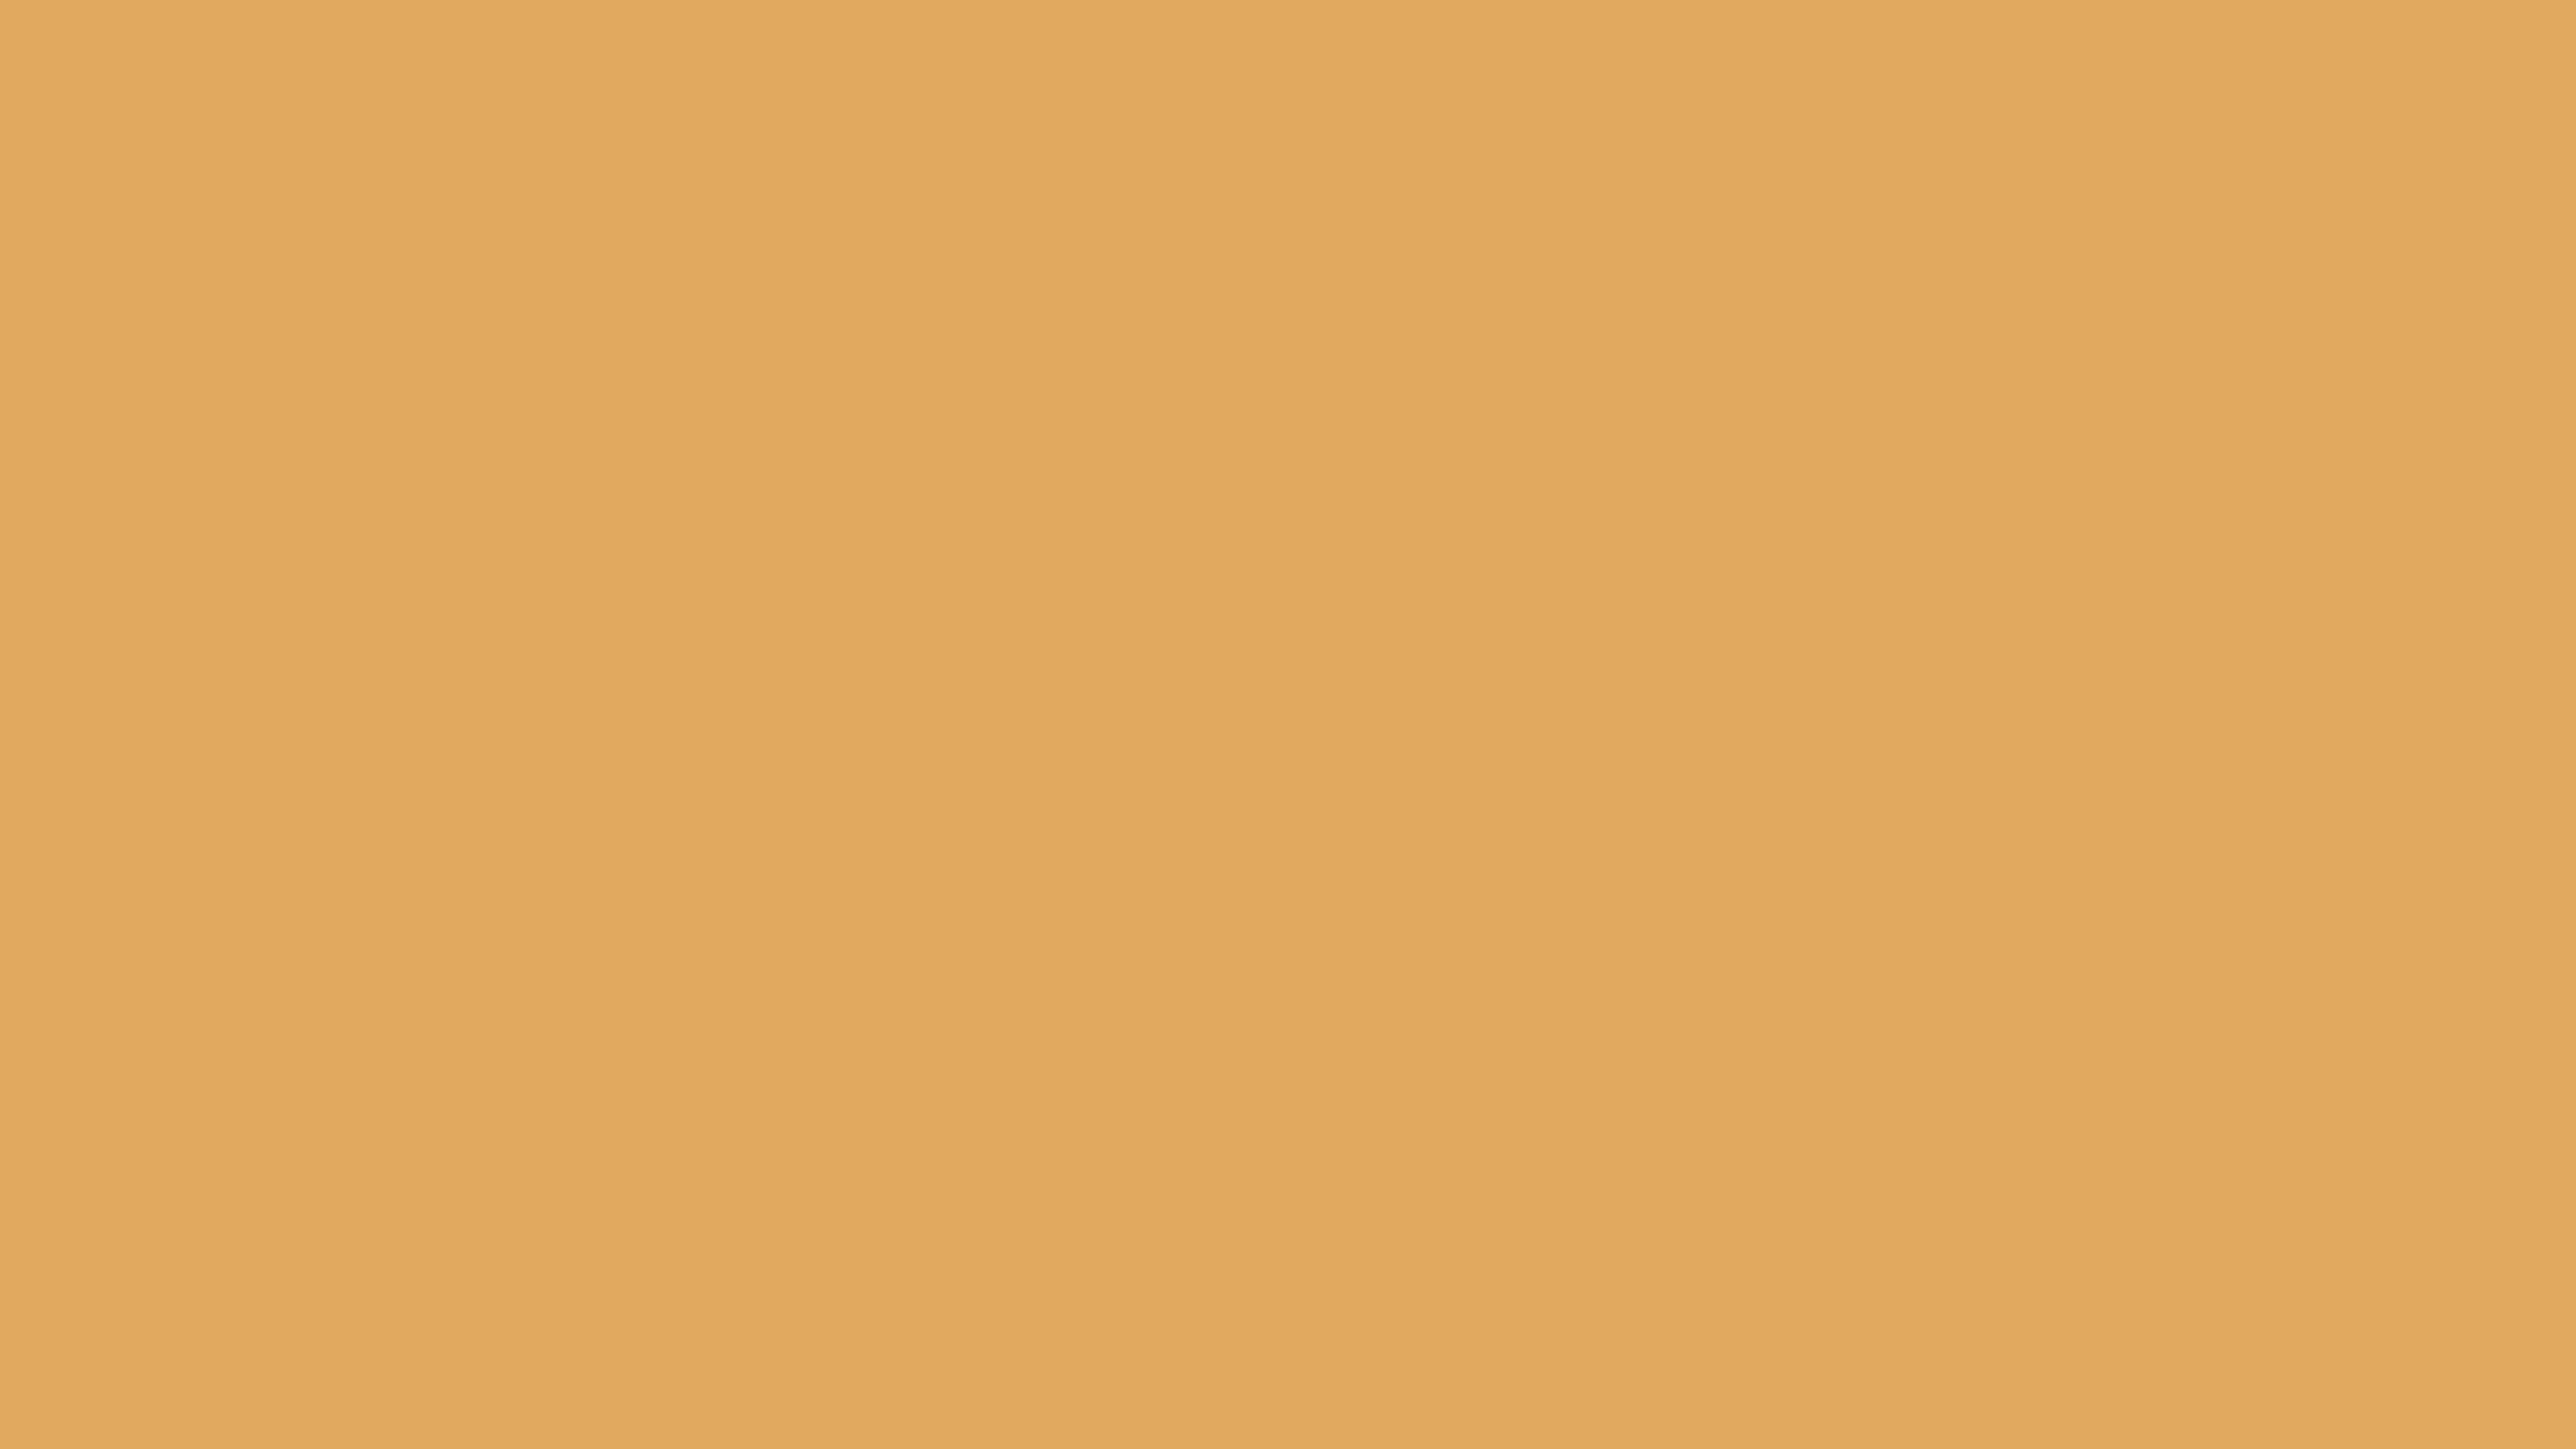 4096x2304 Earth Yellow Solid Color Background